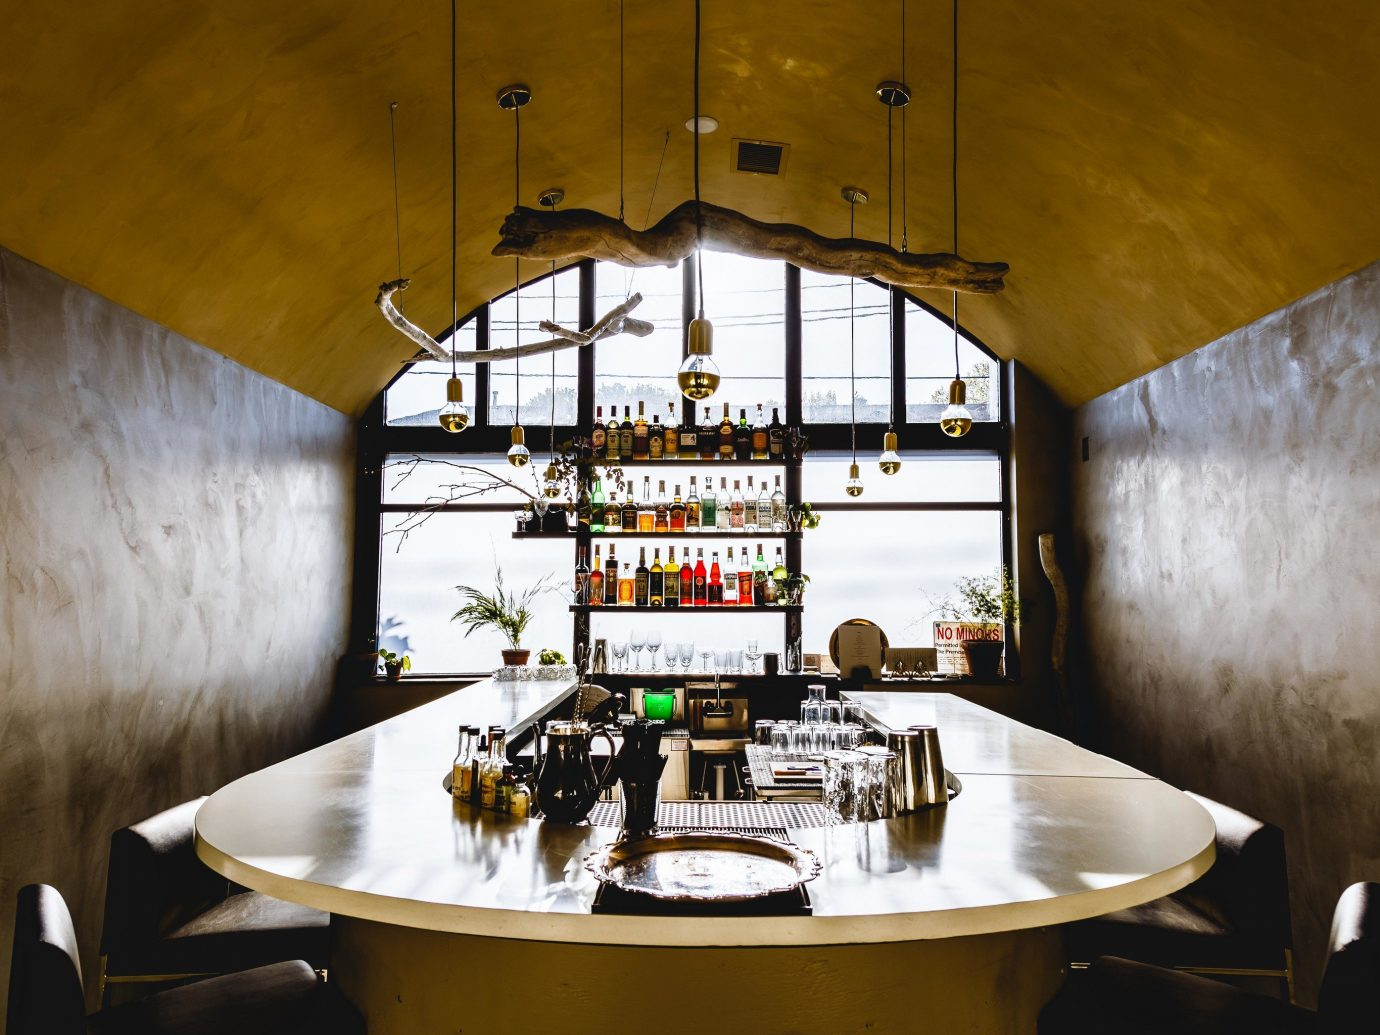 Food + Drink Portland, Oregon Trip Ideas interior design Architecture table house ceiling